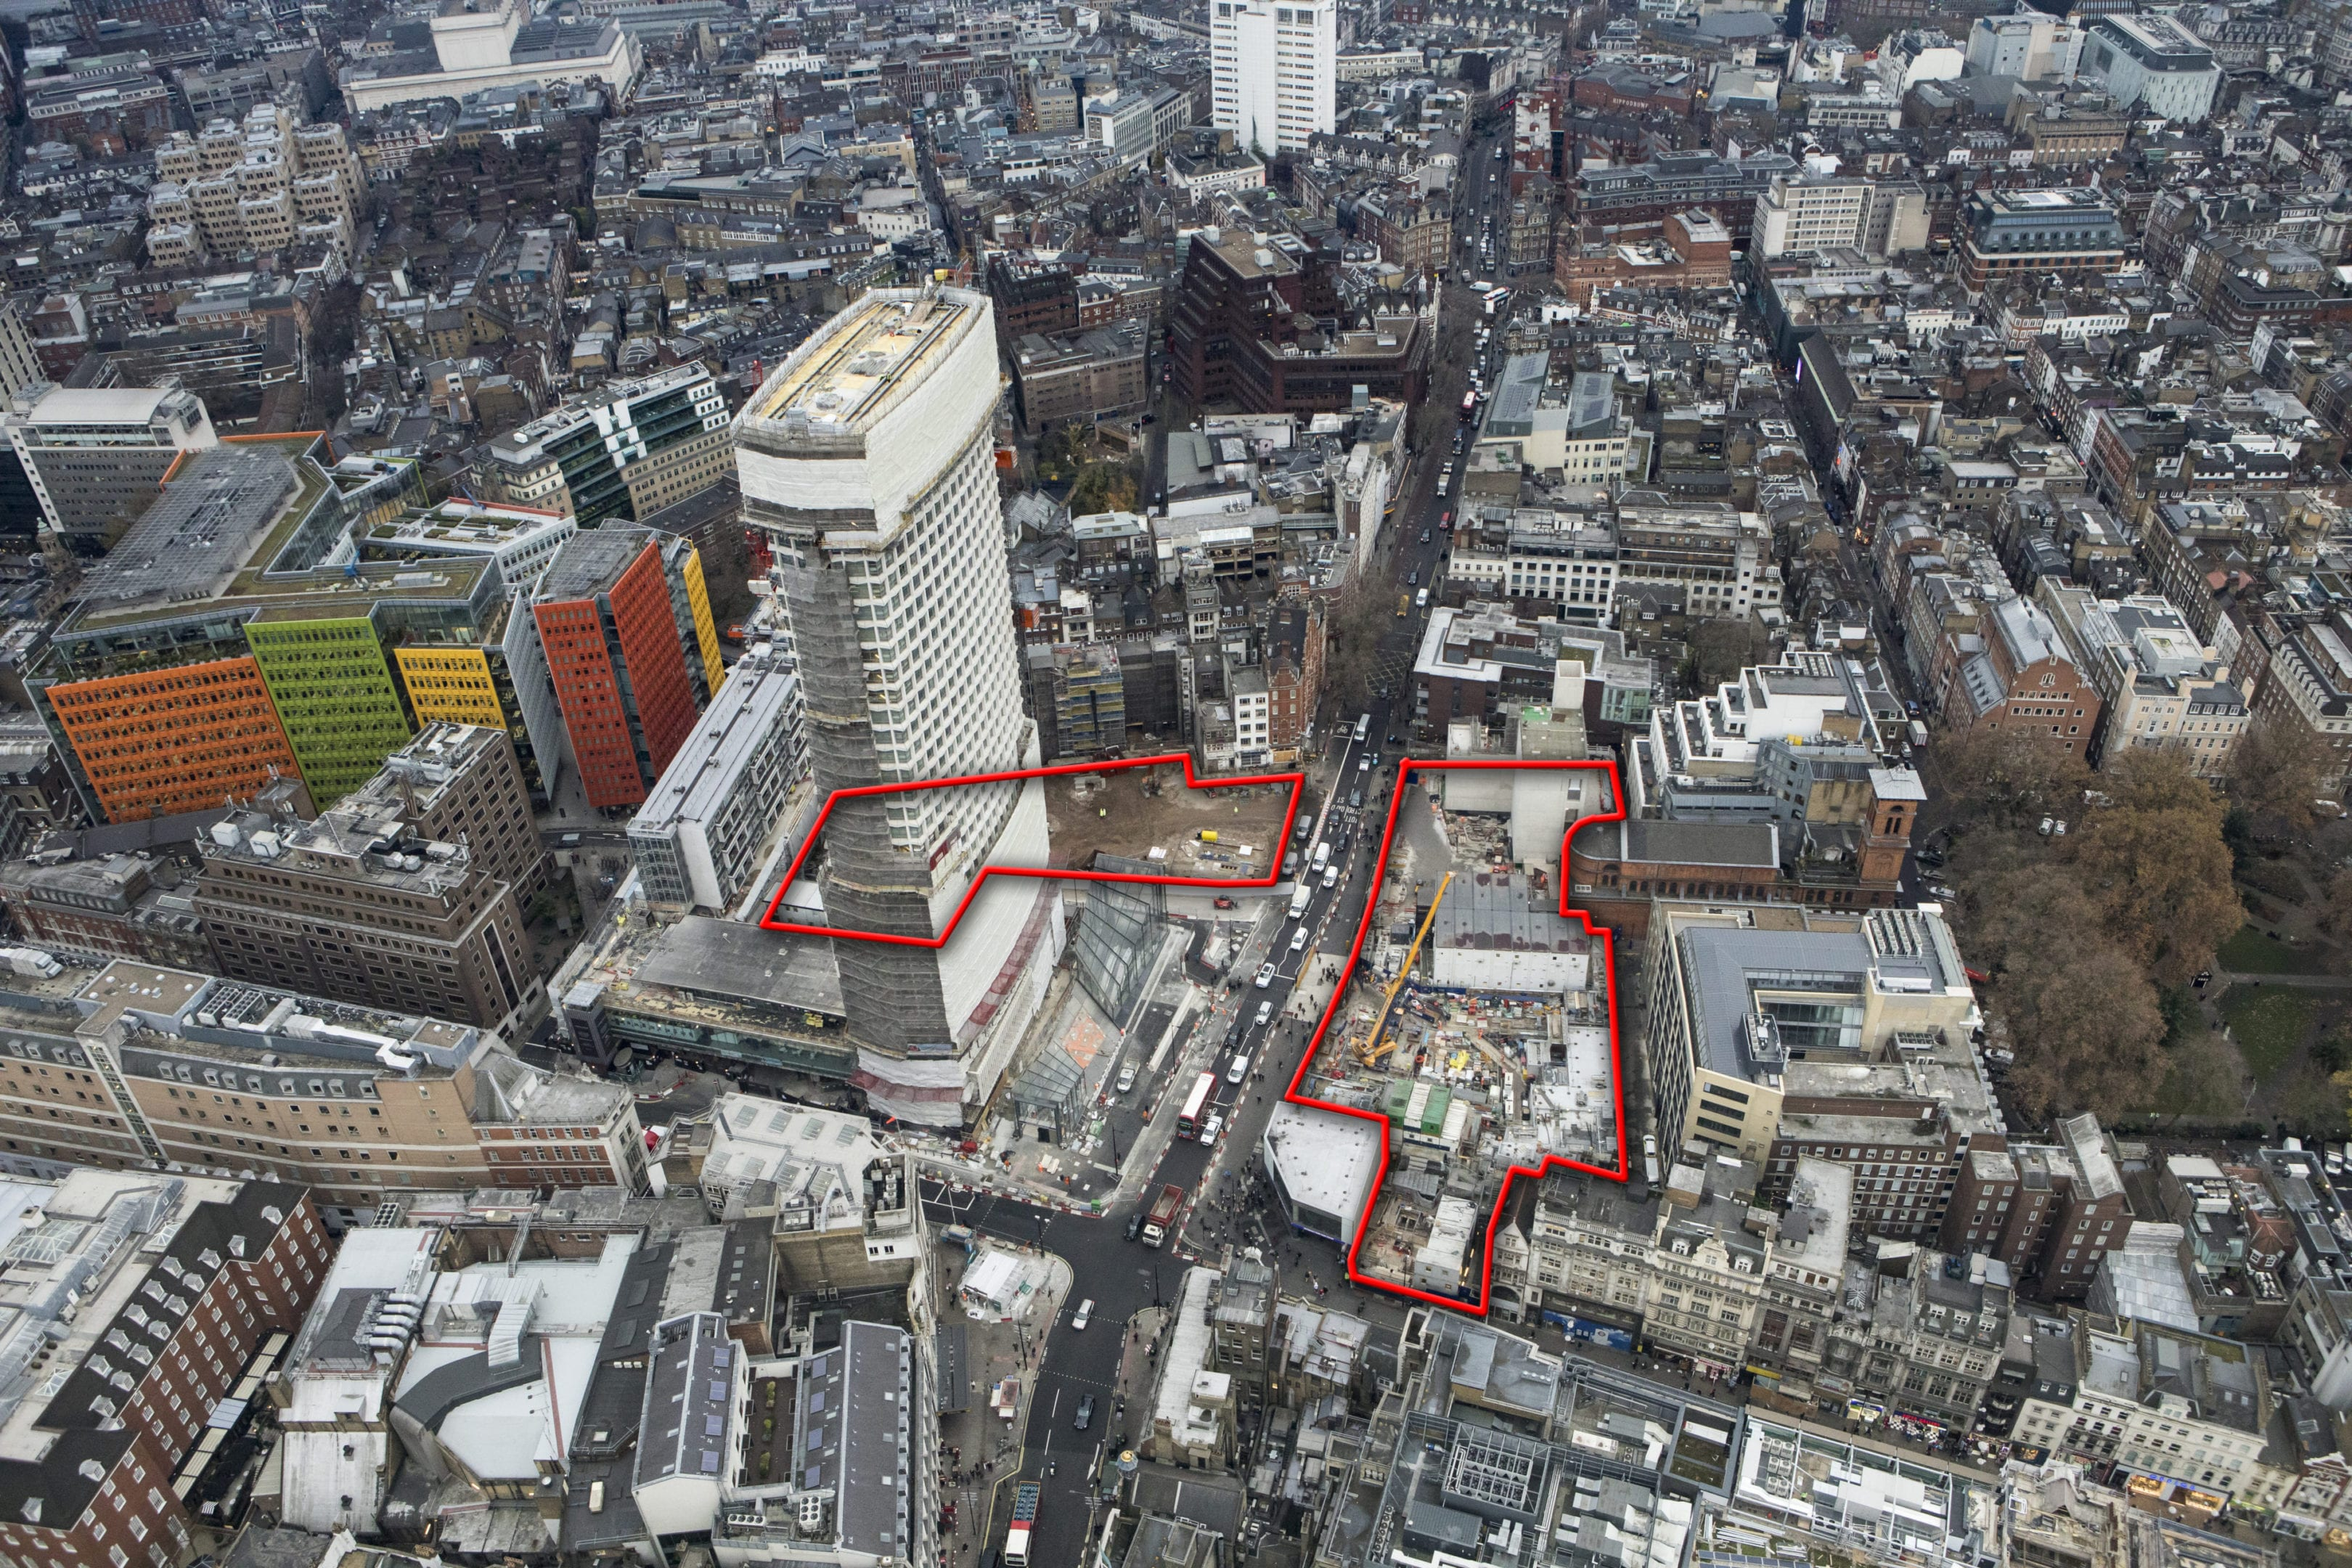 Image of Tottenham Court Rd Crossrail Project